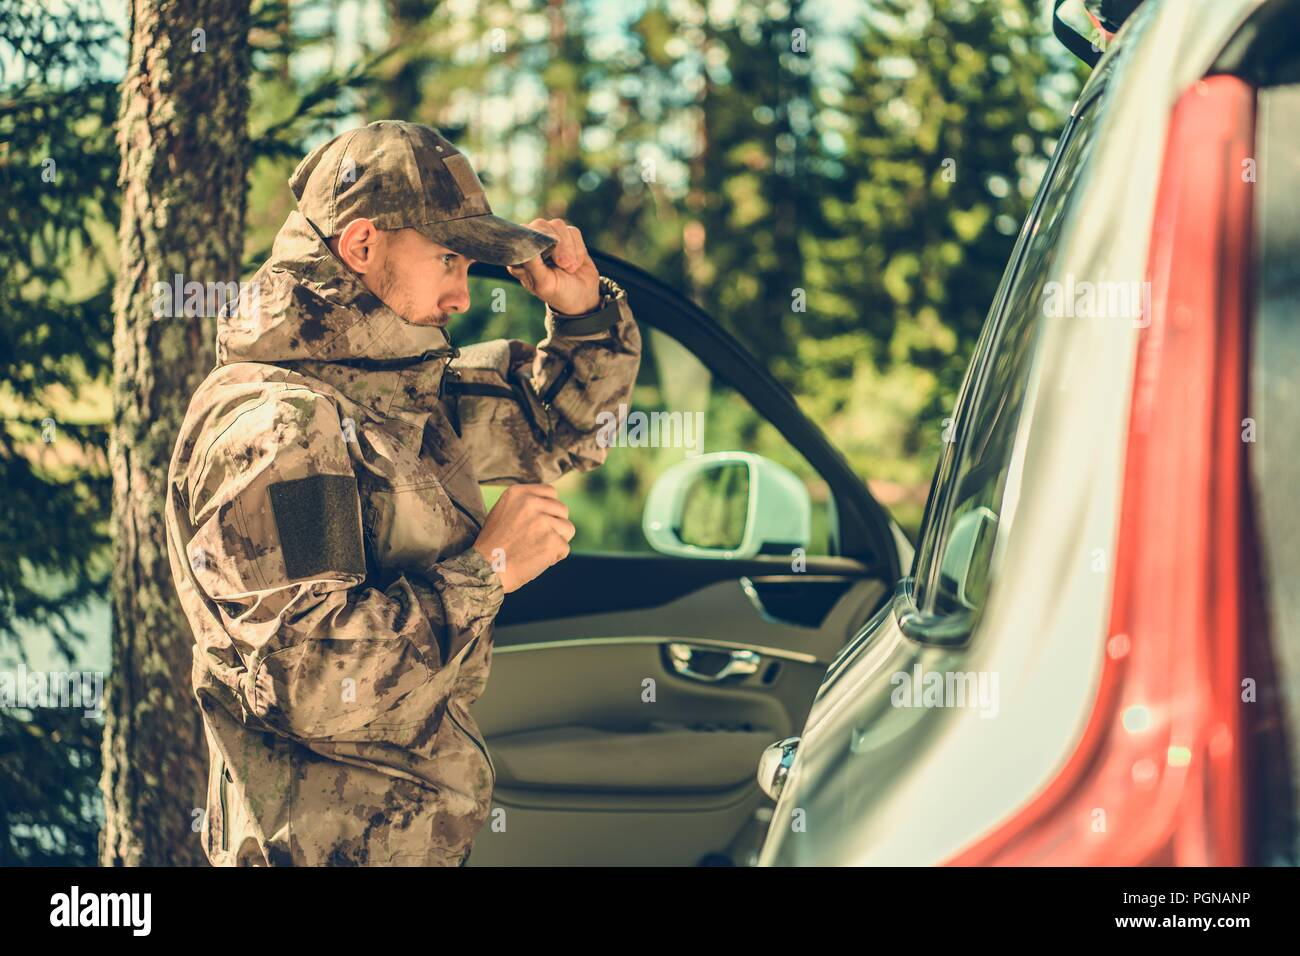 Caucasian Forestry Worker Making Conversation with Driver Who Illegally Entered Closed Section of the Forest. - Stock Image